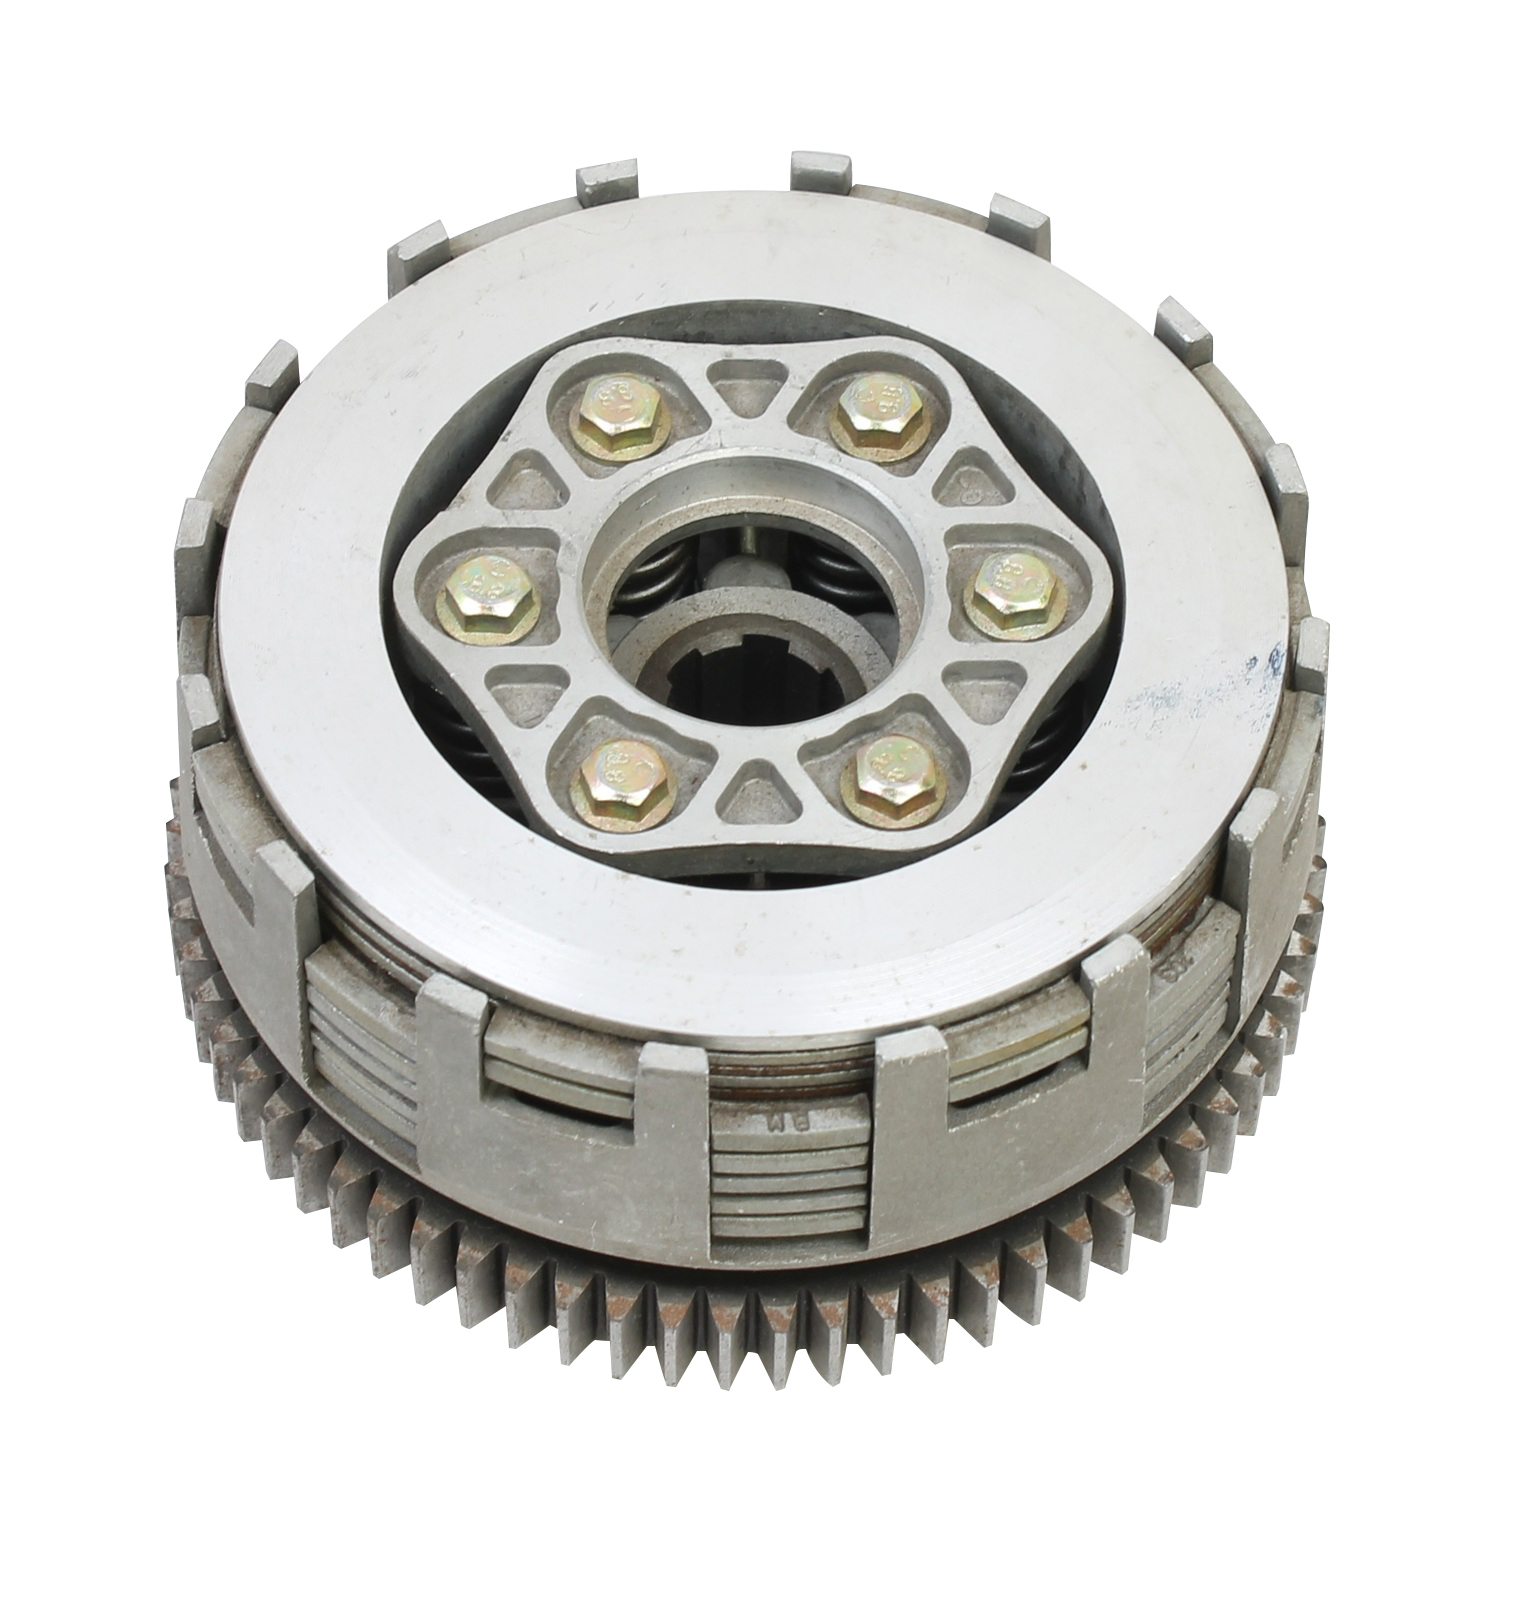 Clutch Assembly for LONCIN CB250cc Engine ATV Quad Dirt Bike Go Kart